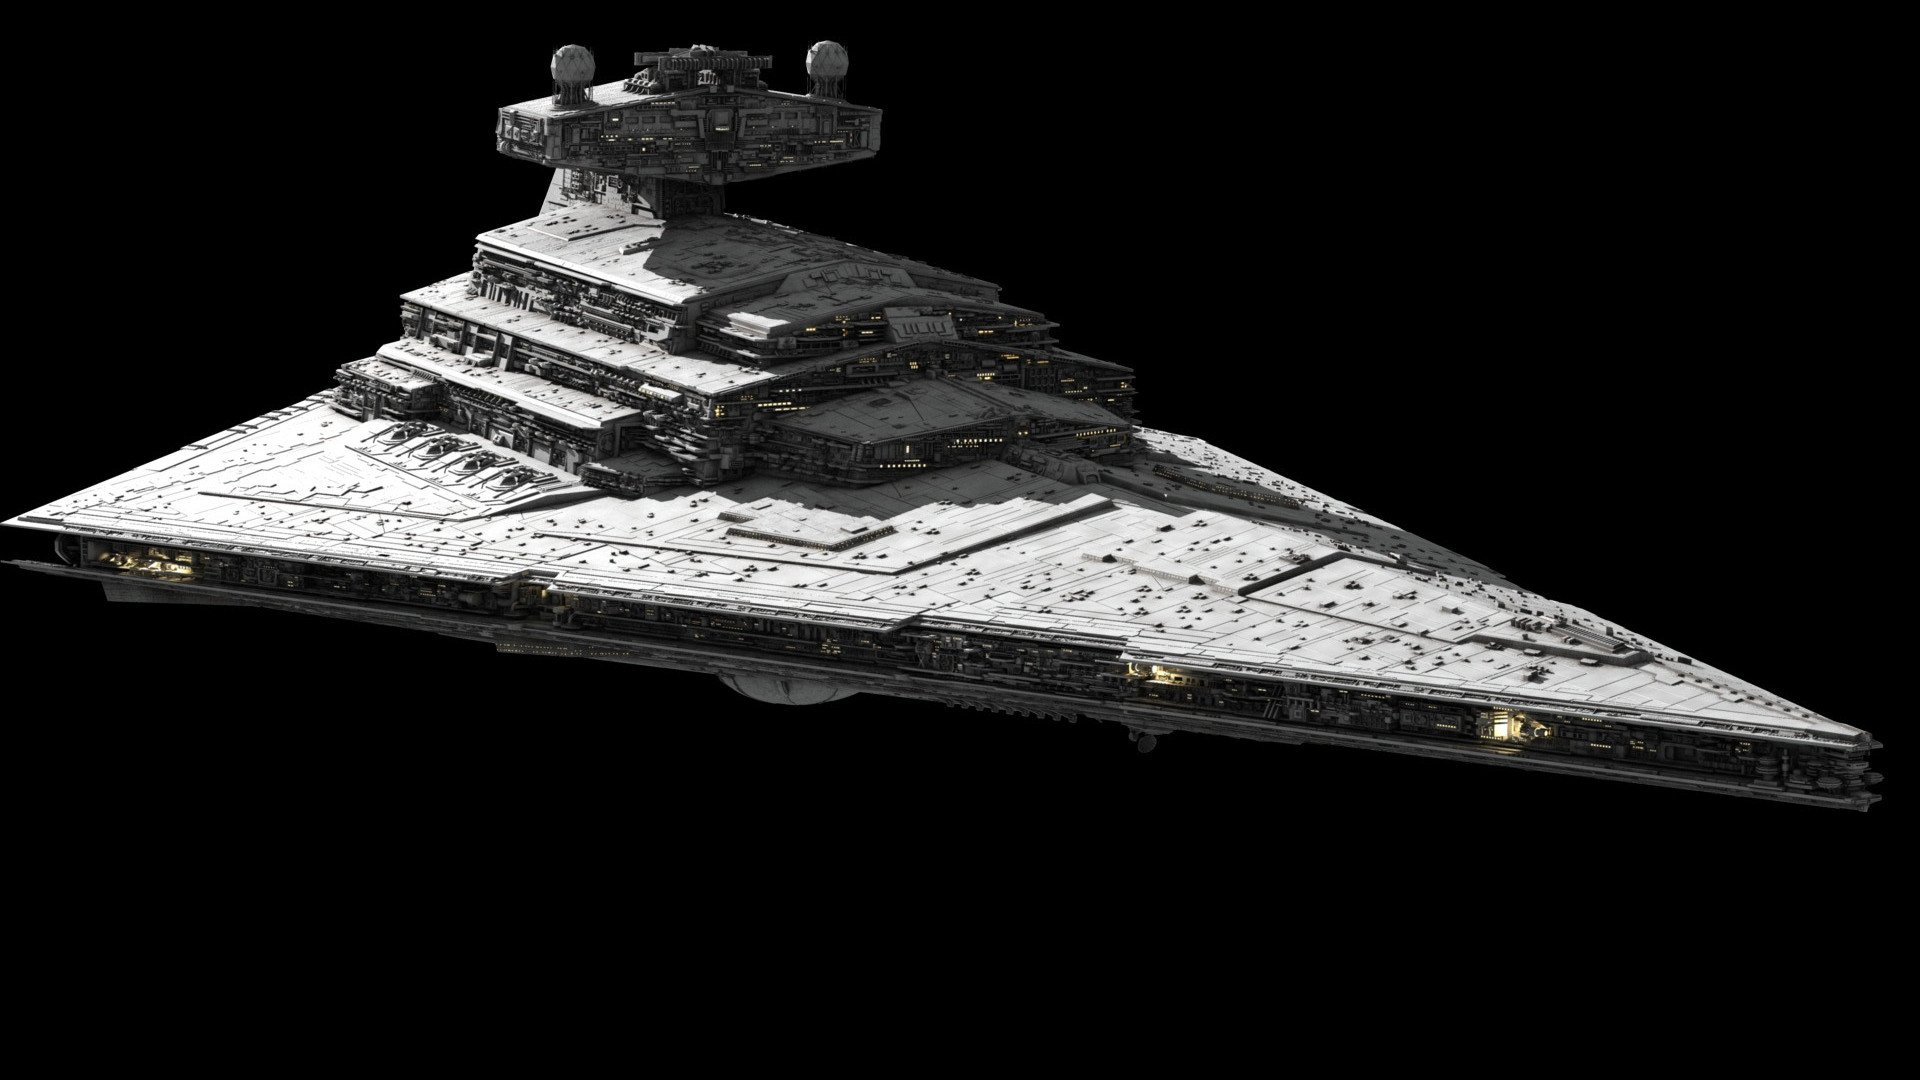 Star wars star destroyer wallpaper wallpapersafari - Image vaisseau star wars ...